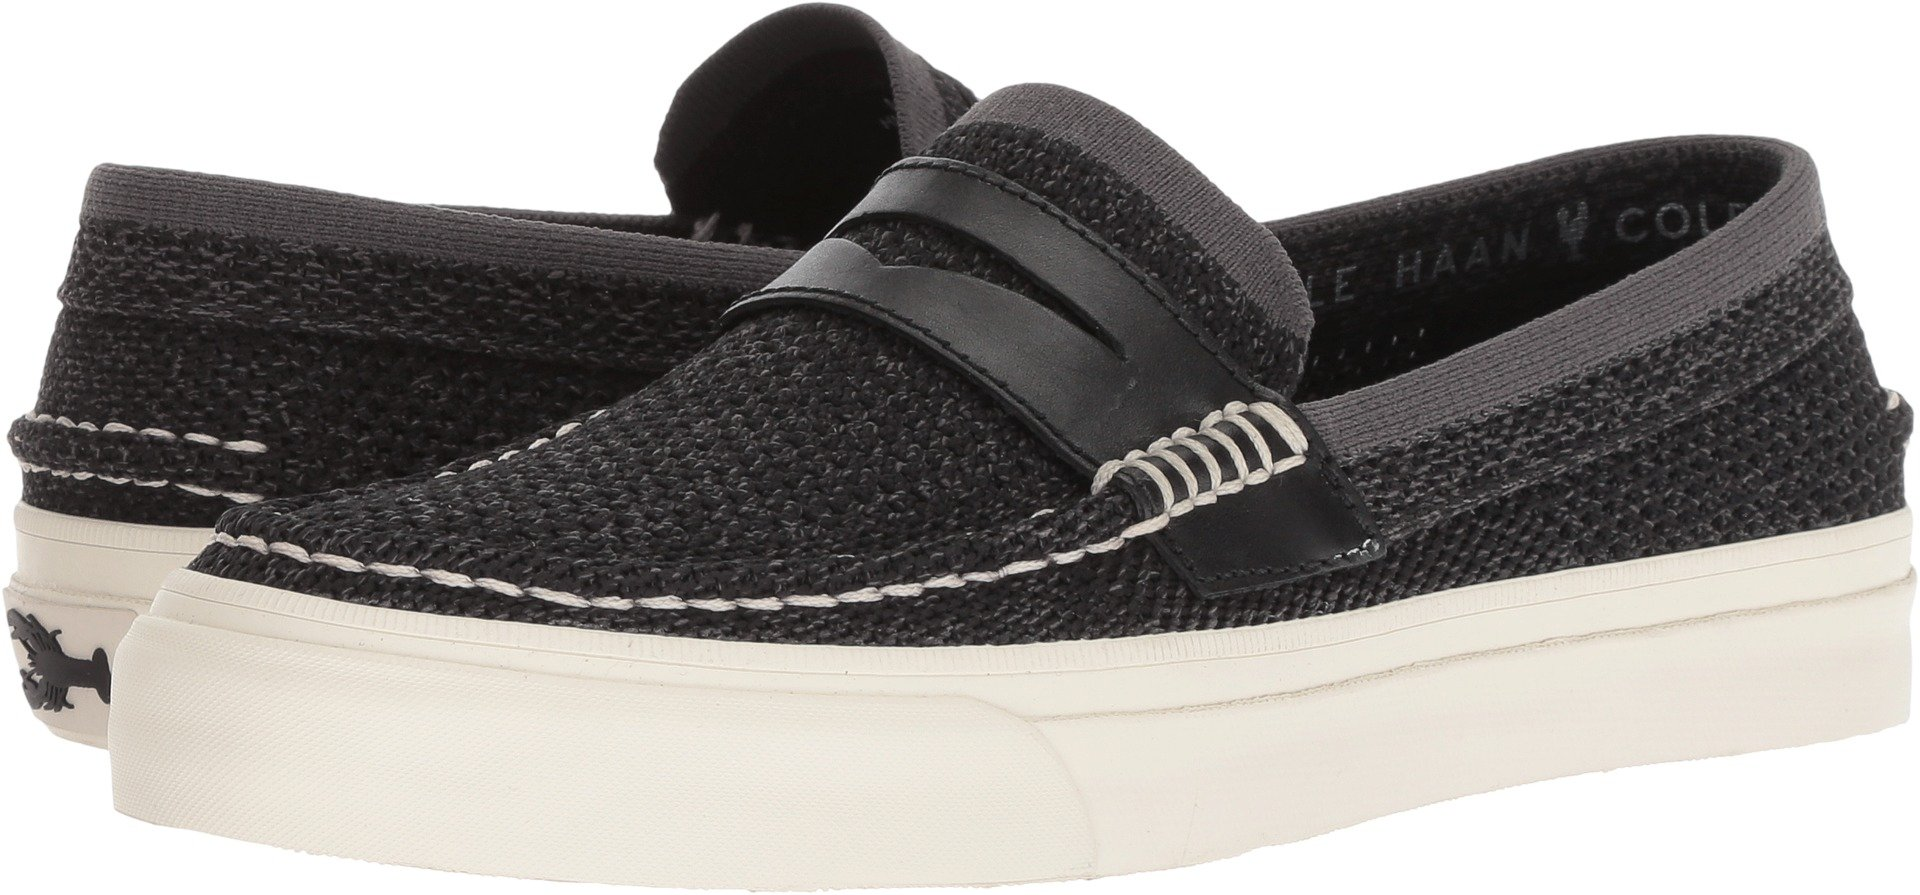 ac5e2798471 Galleon - Cole Haan Men s Pinch Weekender LX Stitchlite Penny Loafer ...